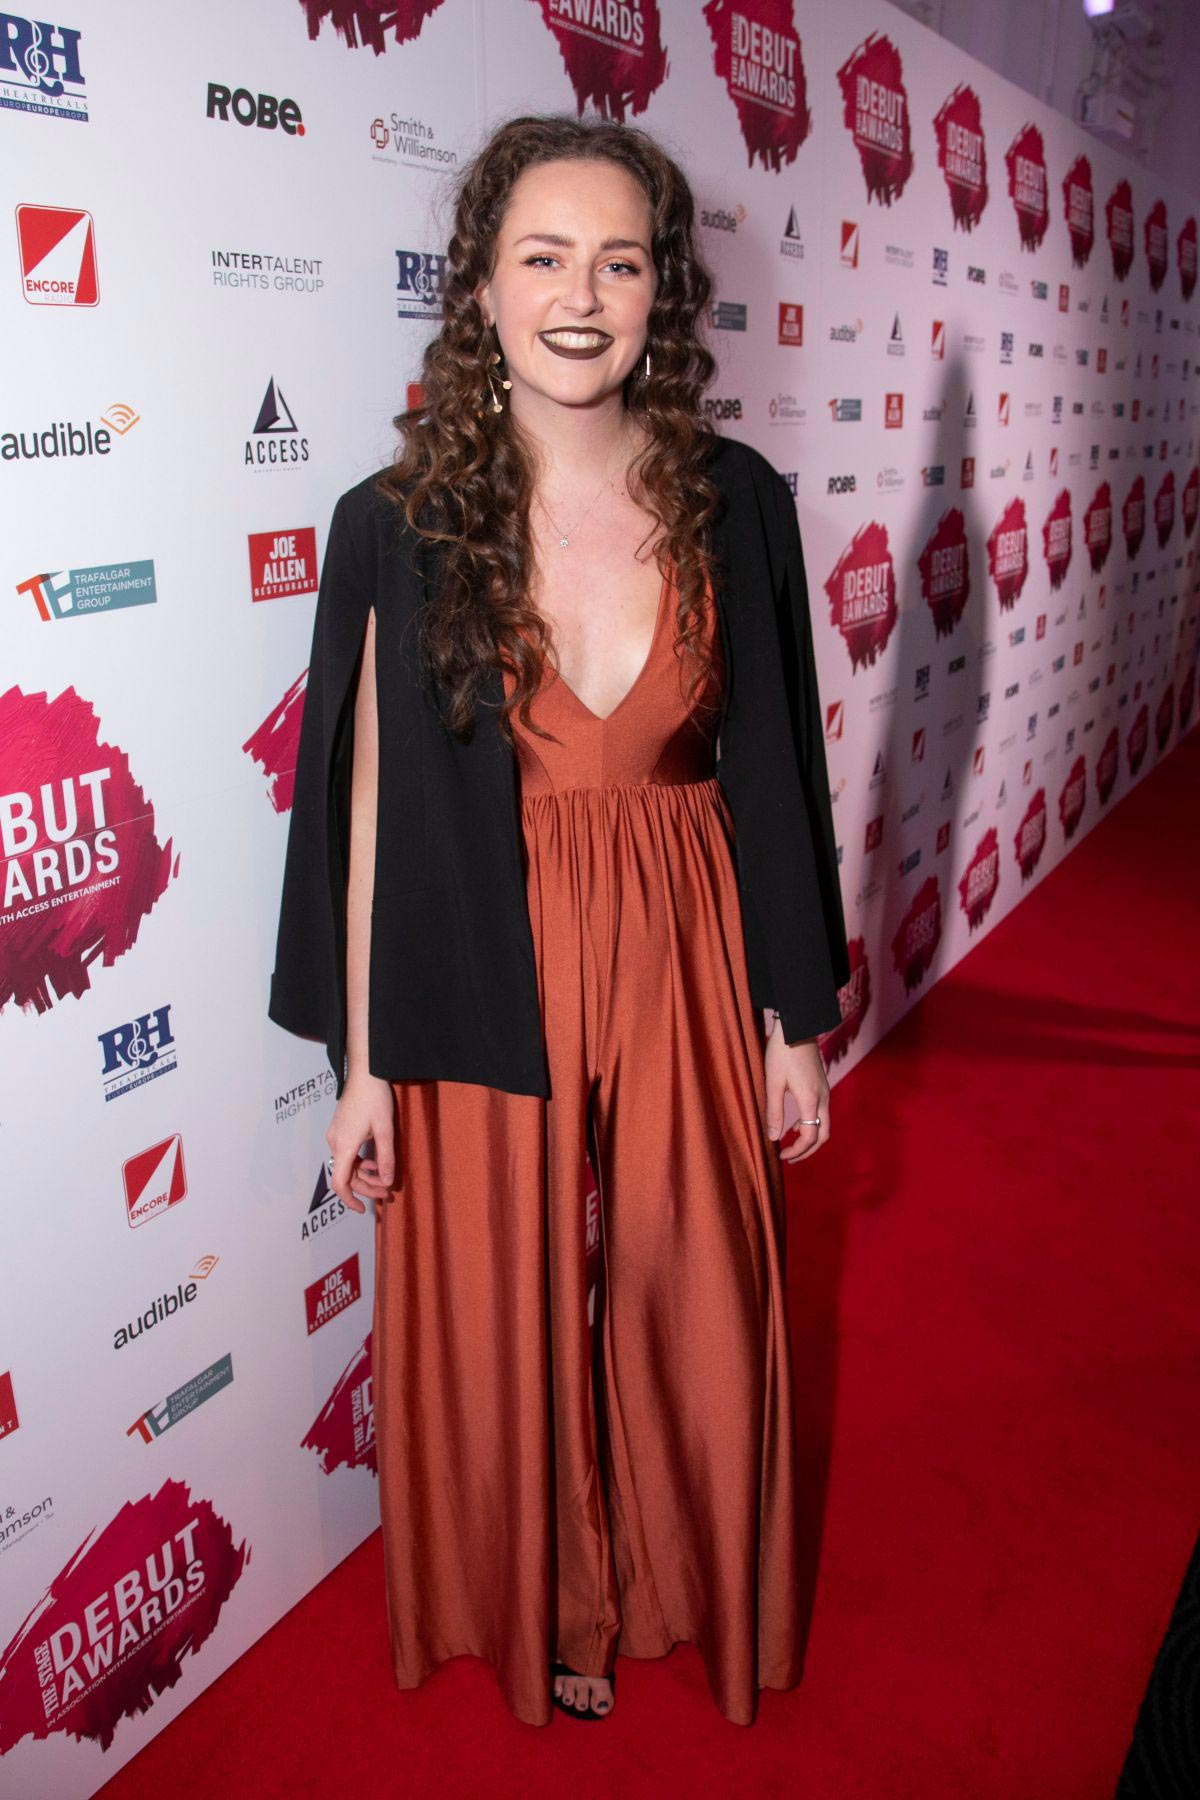 Jasmine Swan at Stage Debut Awards 2018 Arrivals in London 2018/09/23 1